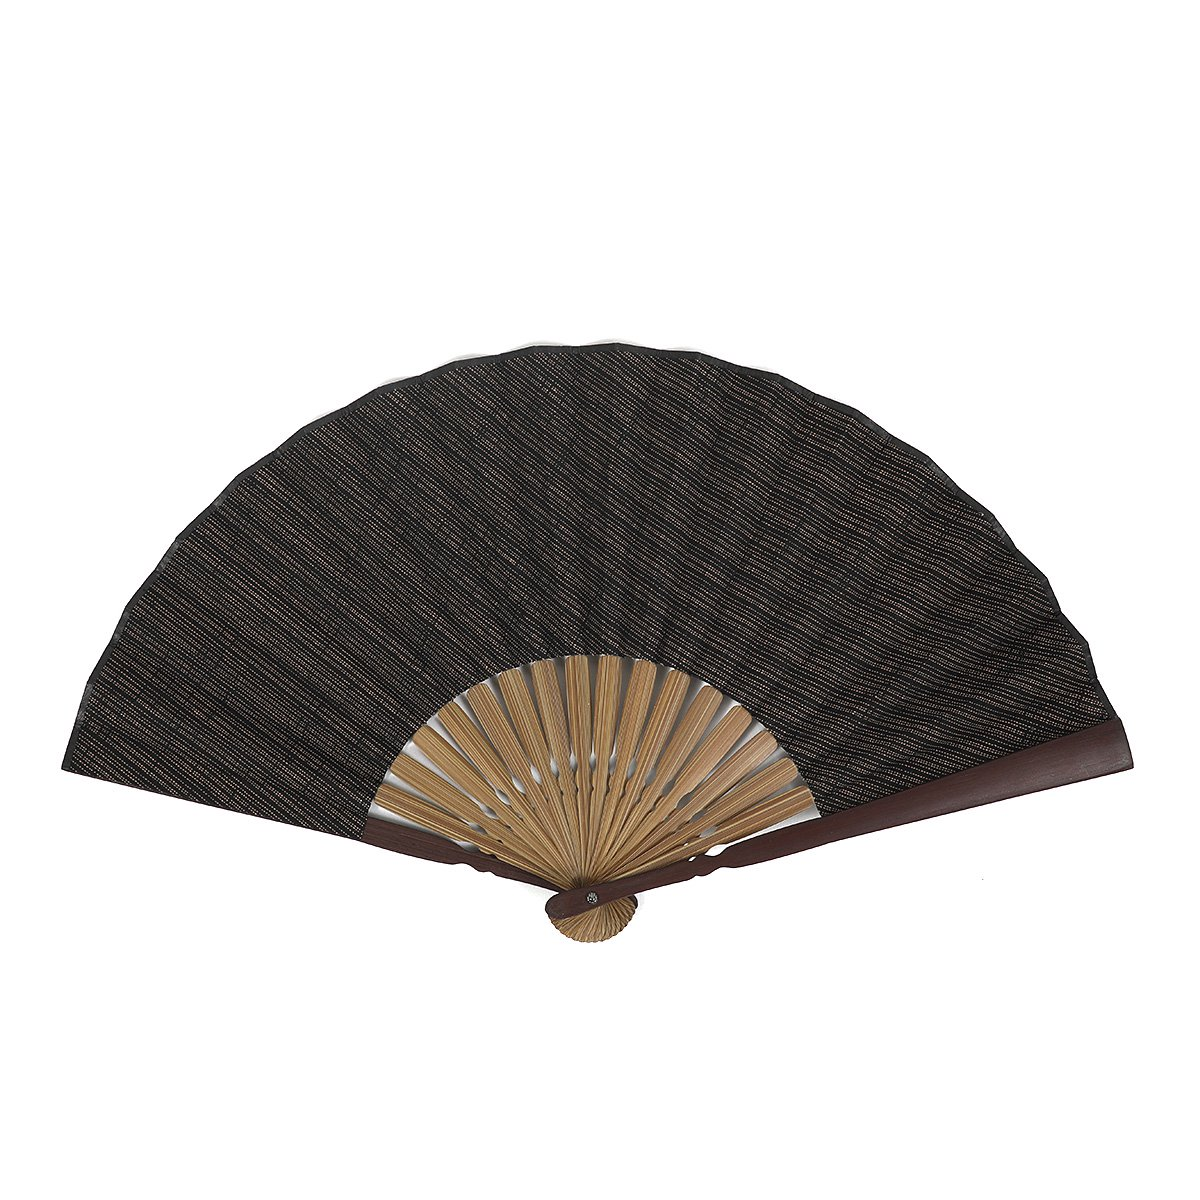 COTTON FAN Mens 詳細画像2